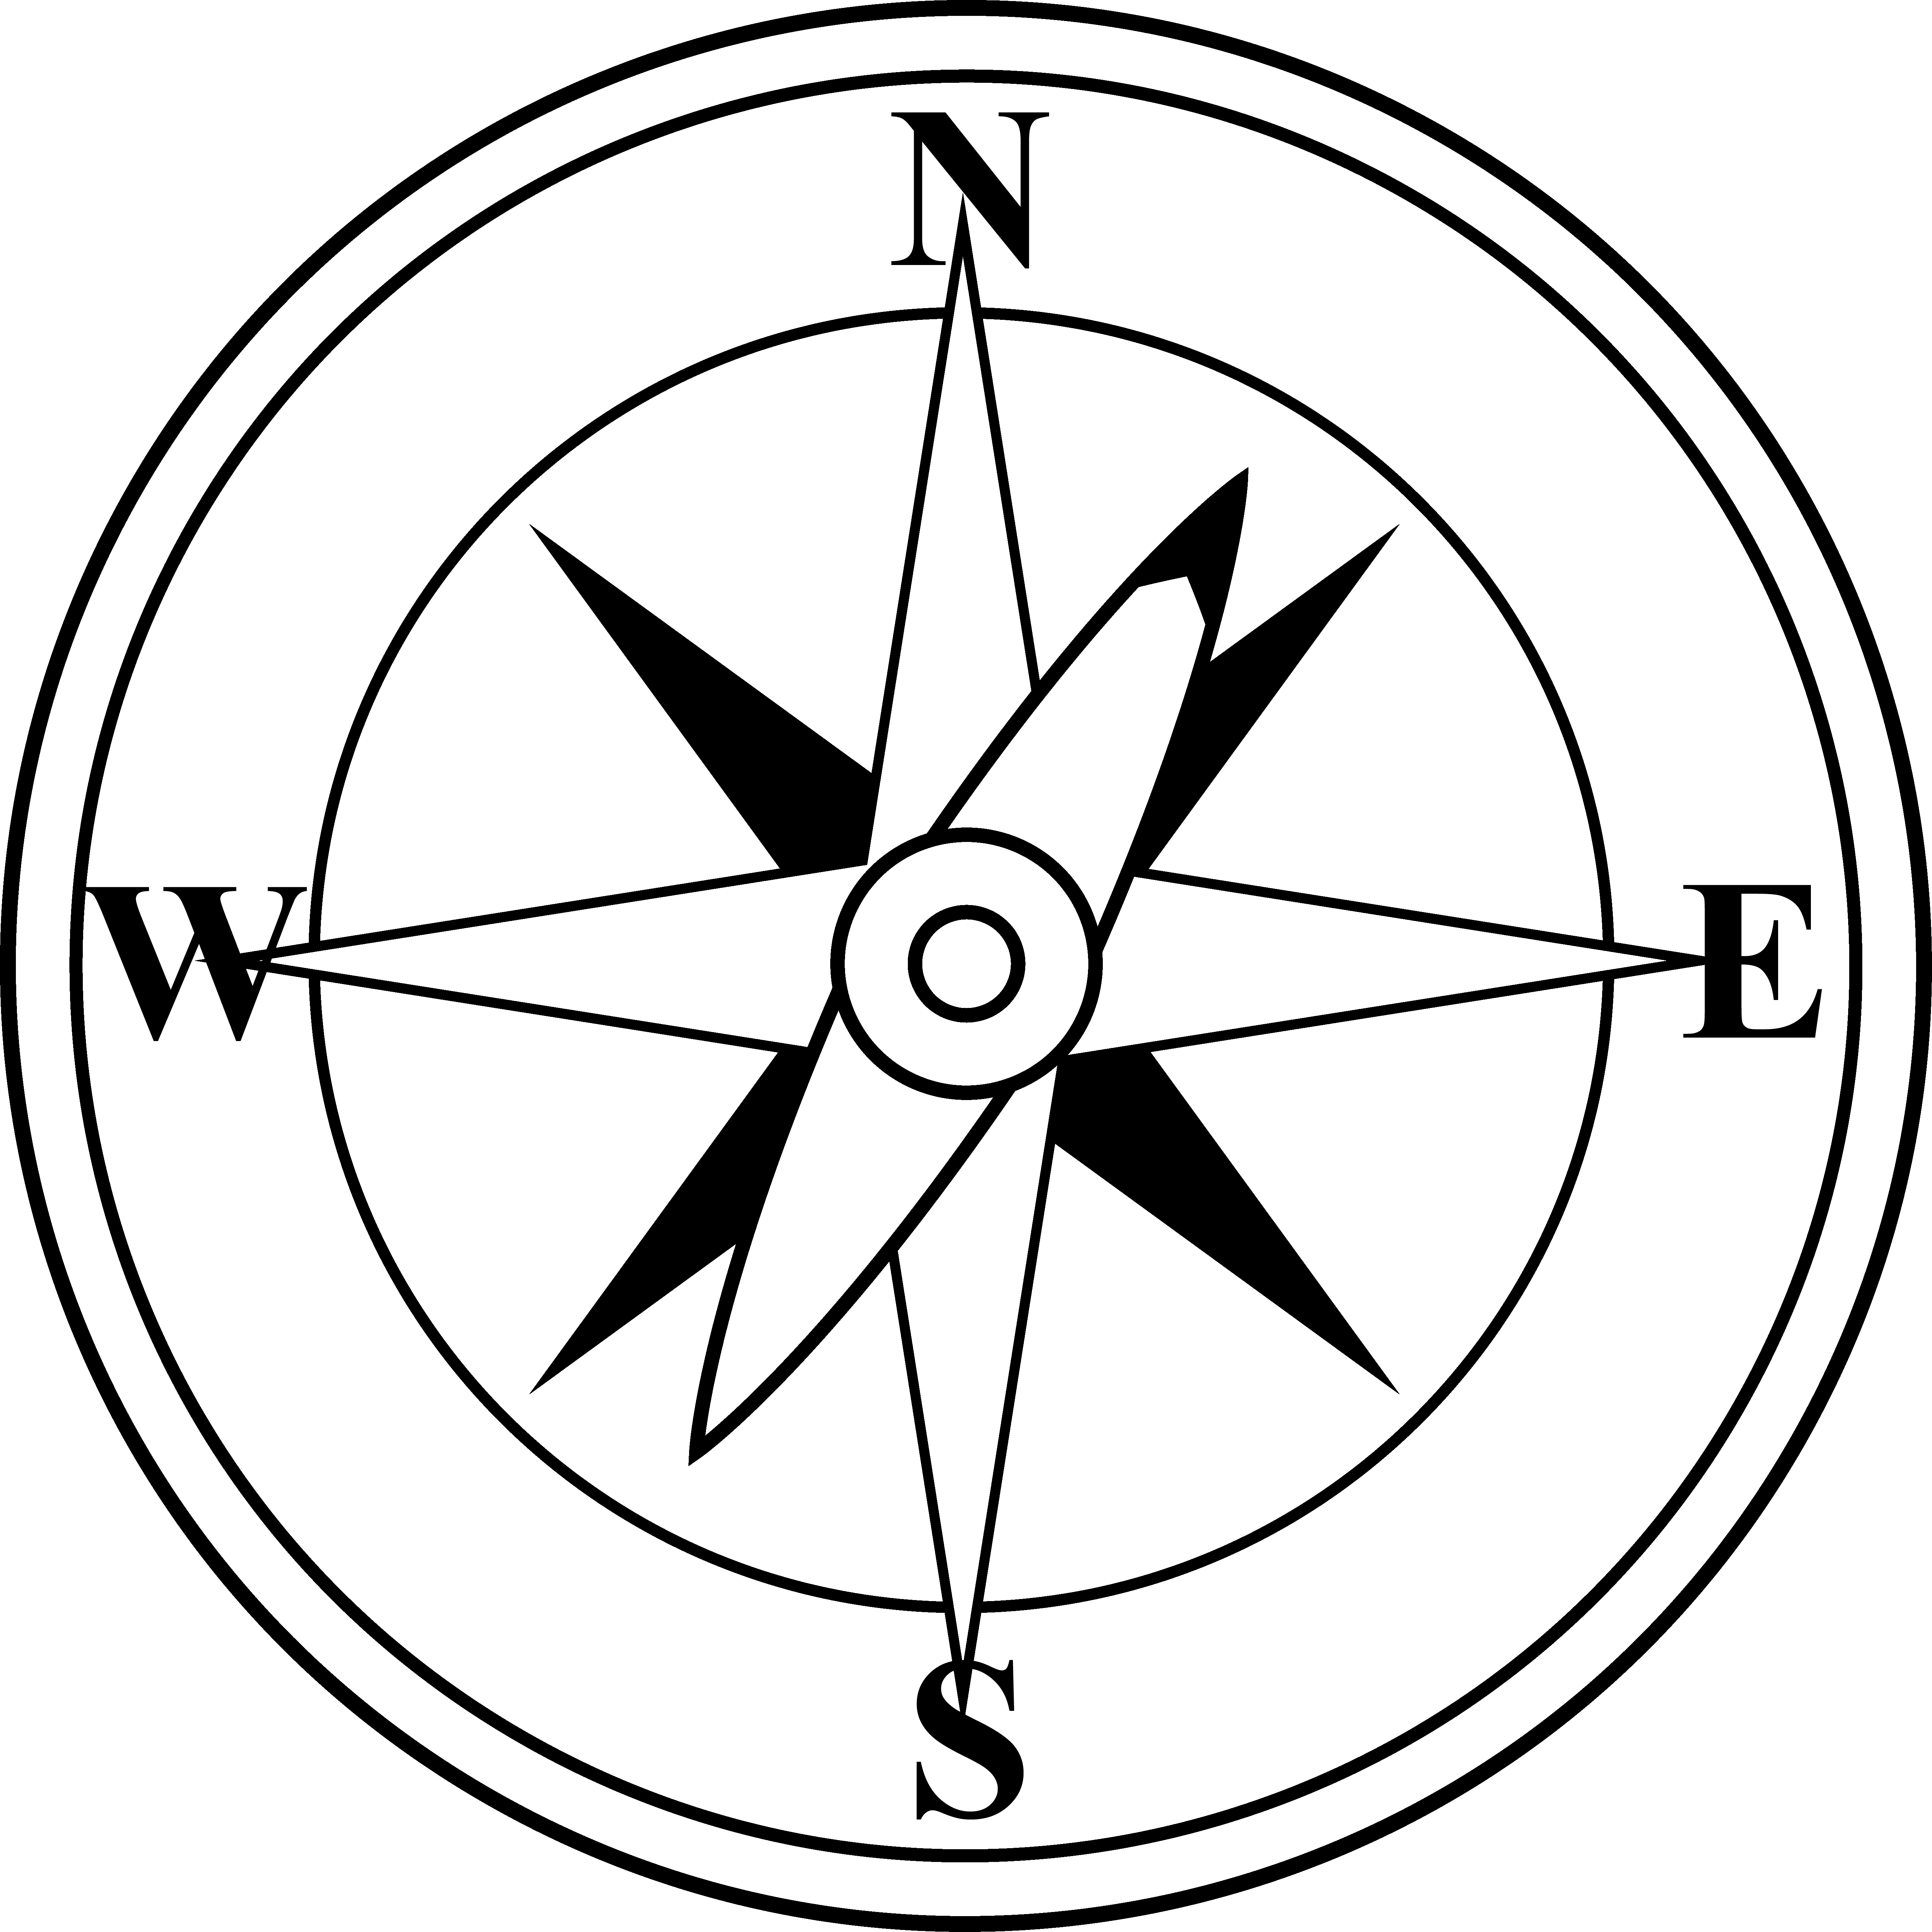 Black and white free. Compass clipart cardinal direction